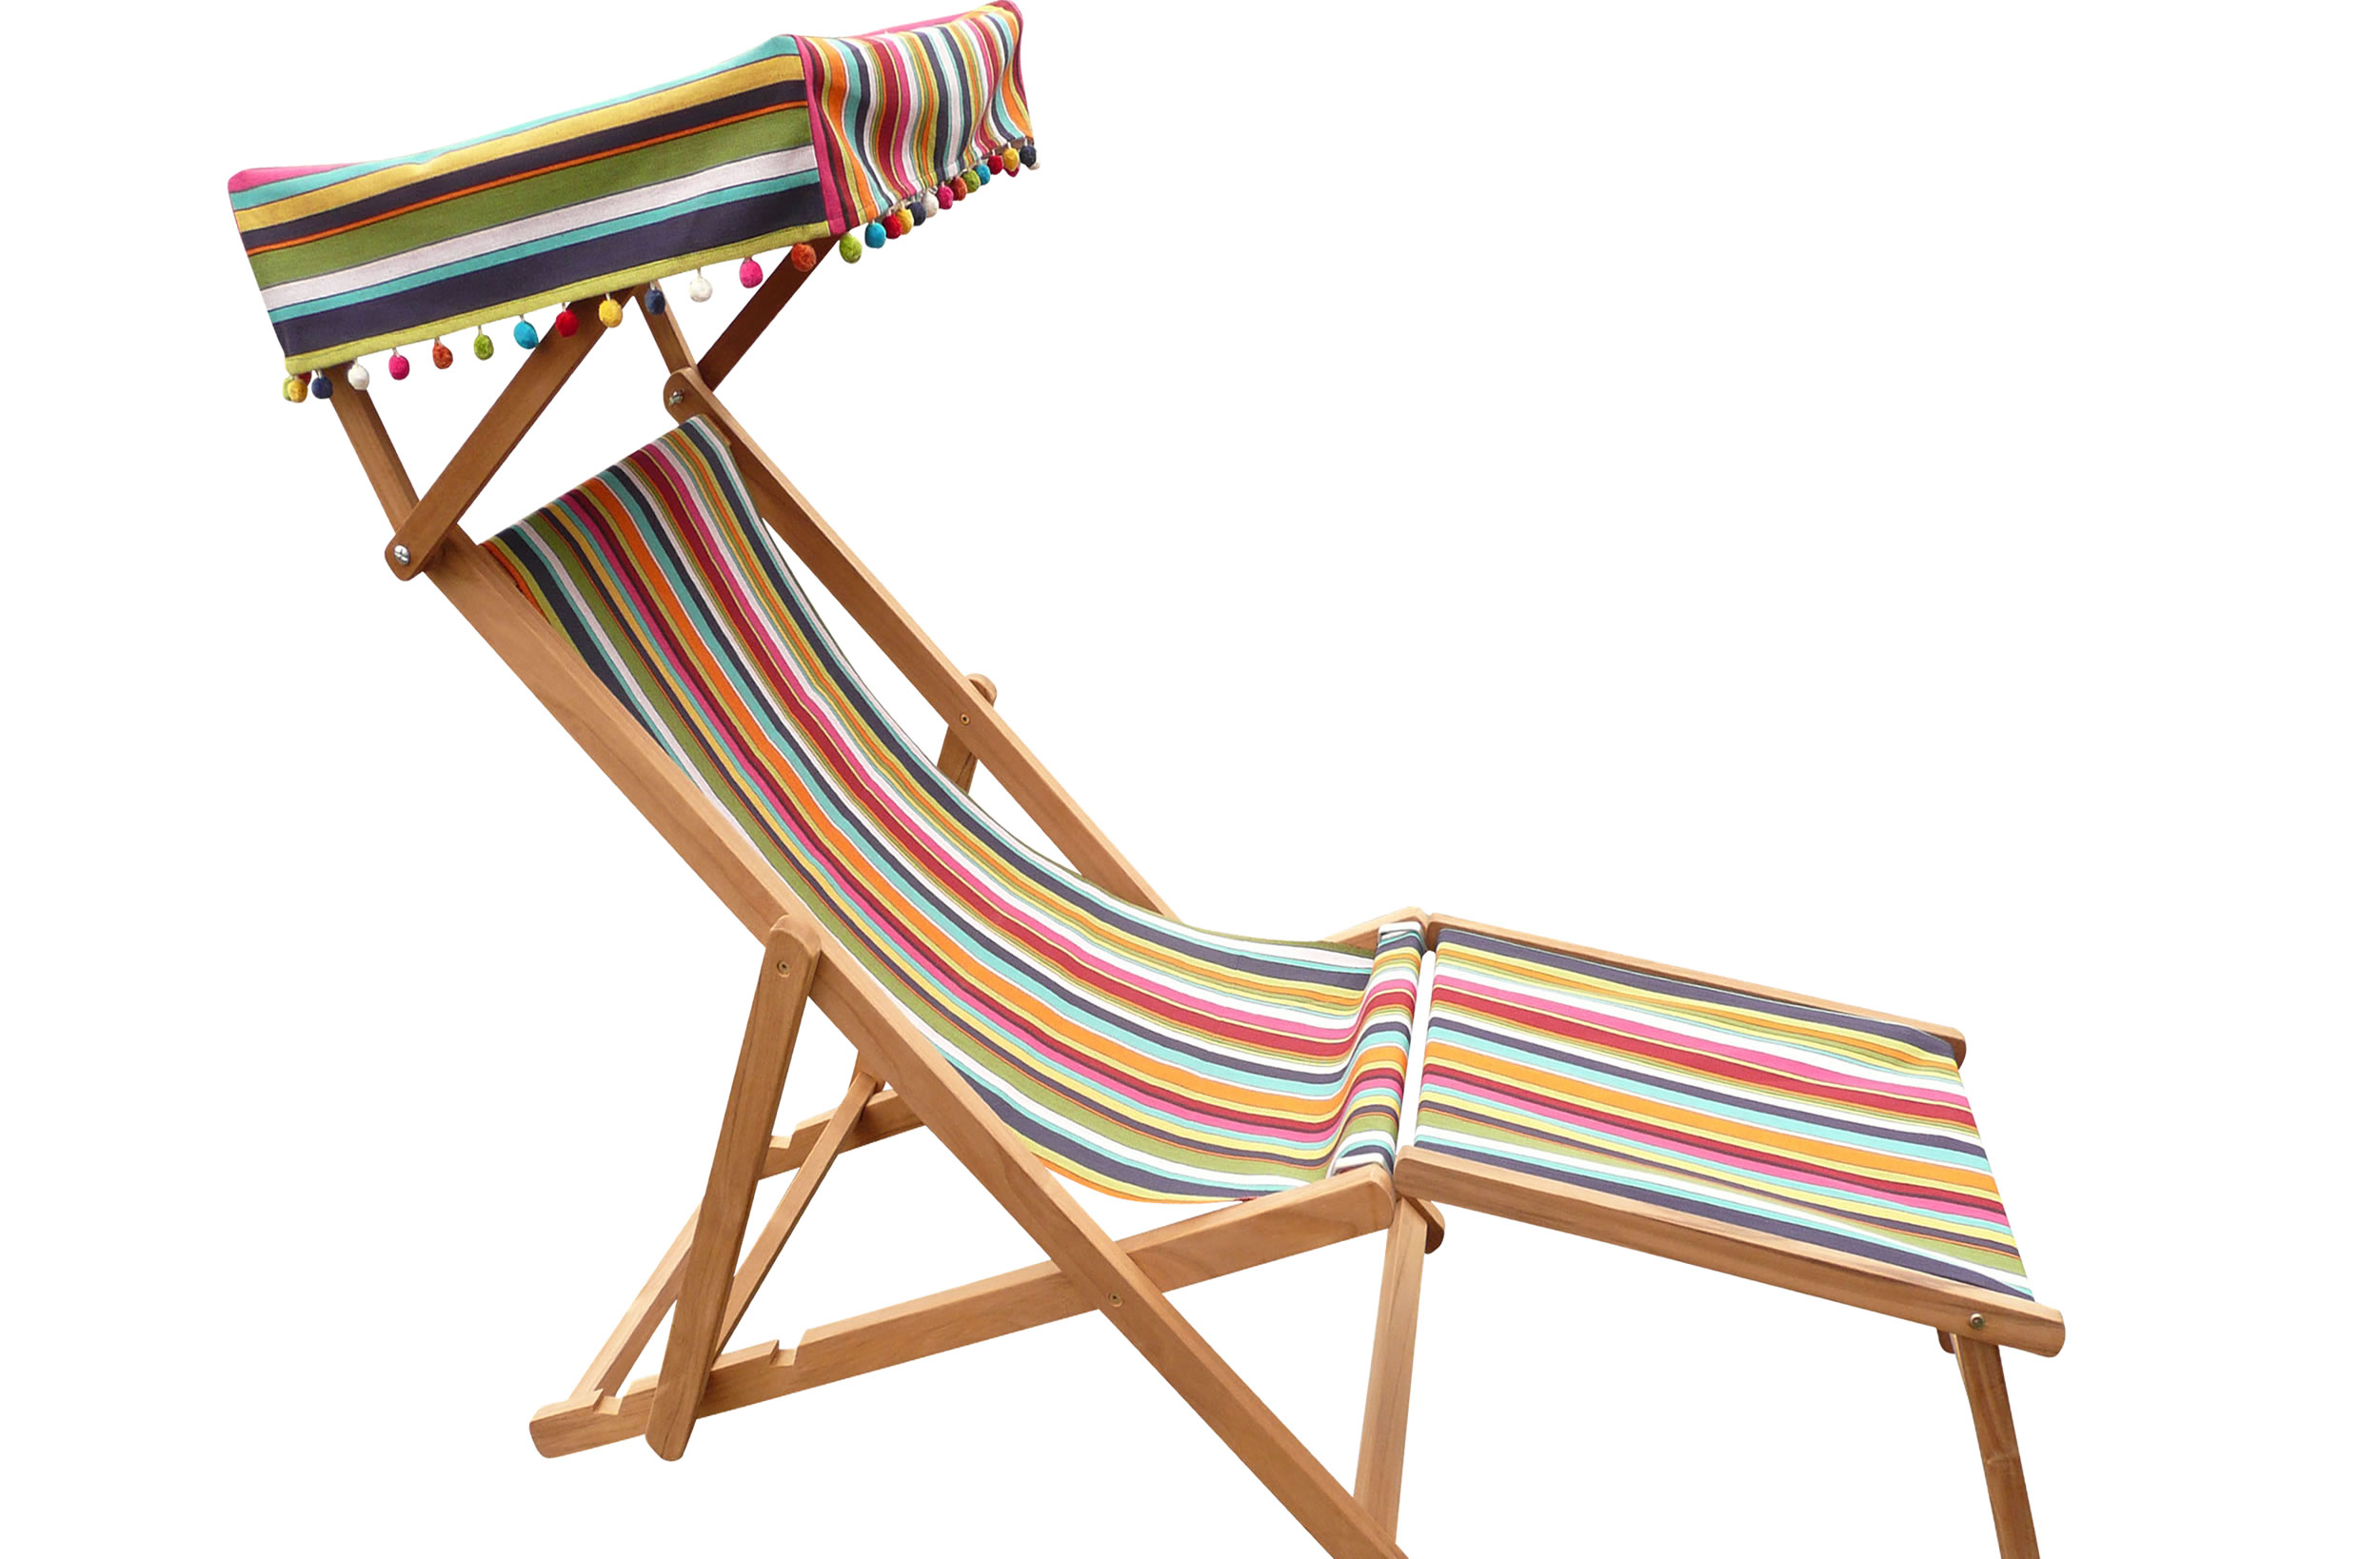 Charmant Edwardian Deckchair With Canopy And Footstool